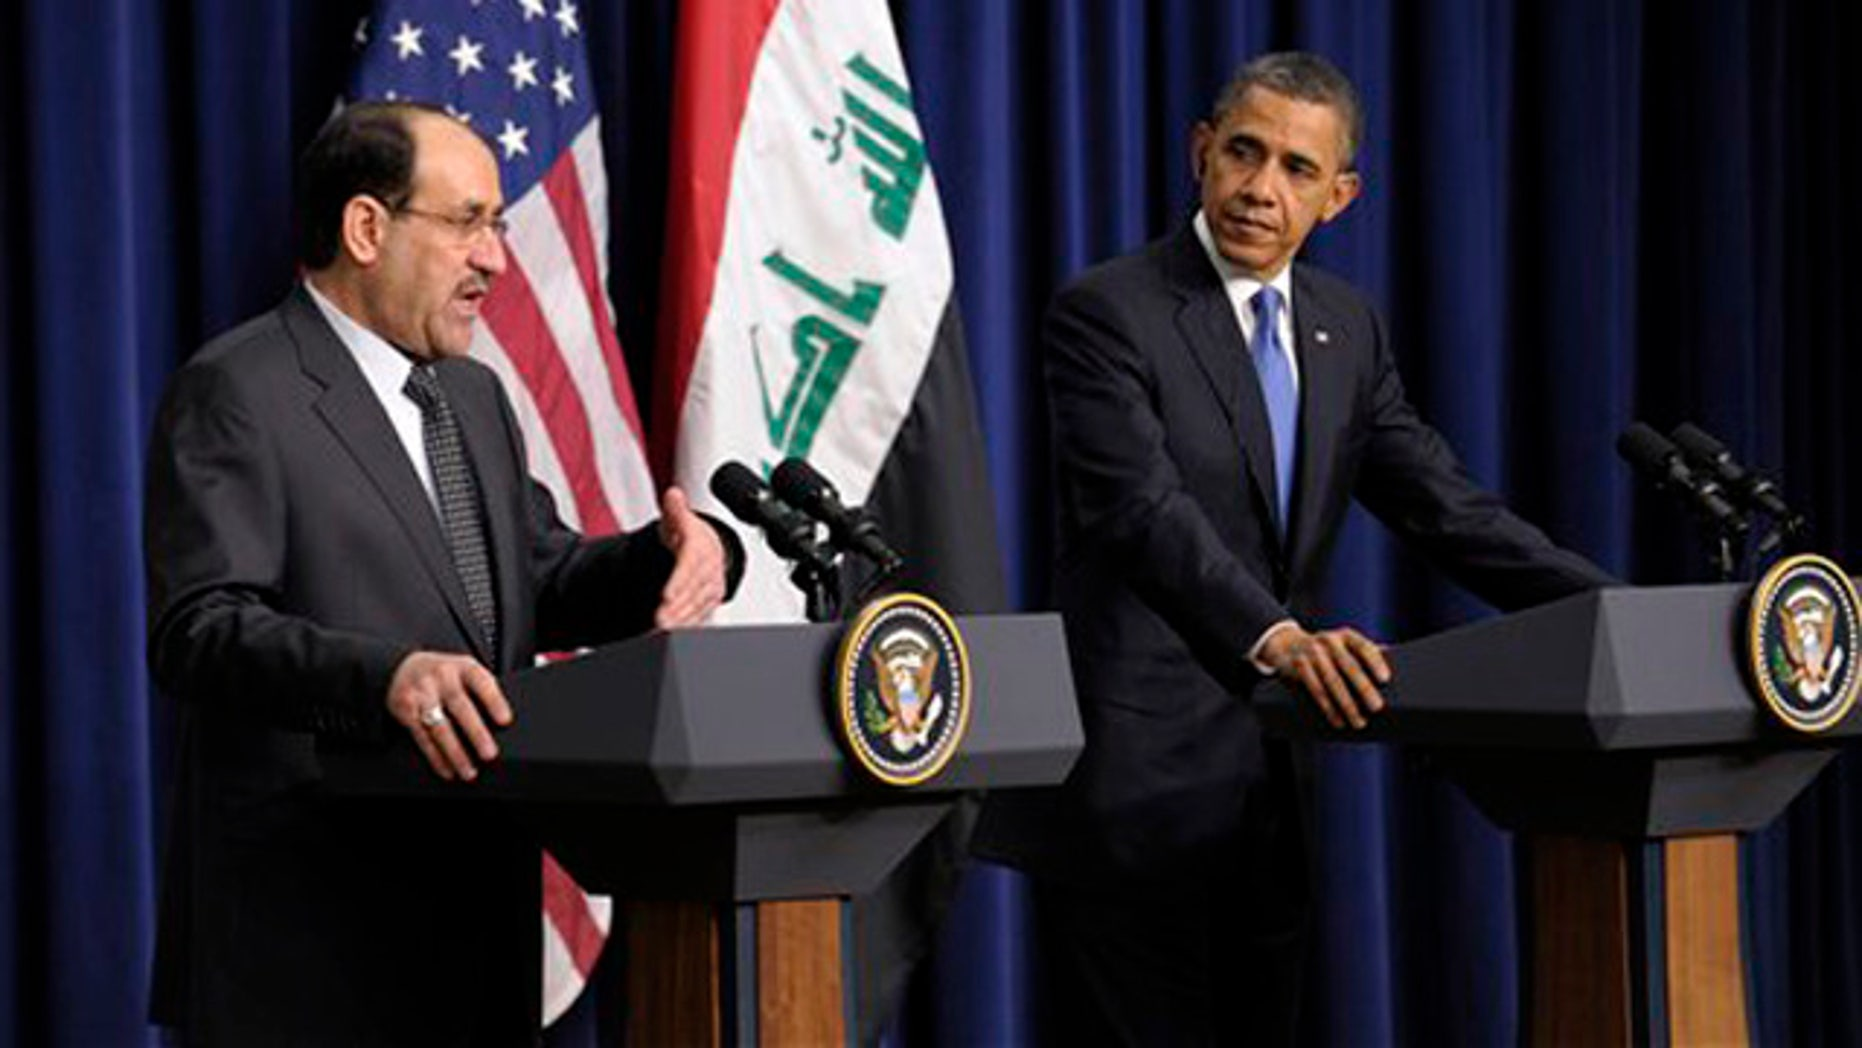 Dec. 12, 2011: President Obama listens as Iraq's Prime Minister Nouri al-Maliki speaks during a news conference at the White House in Washington.